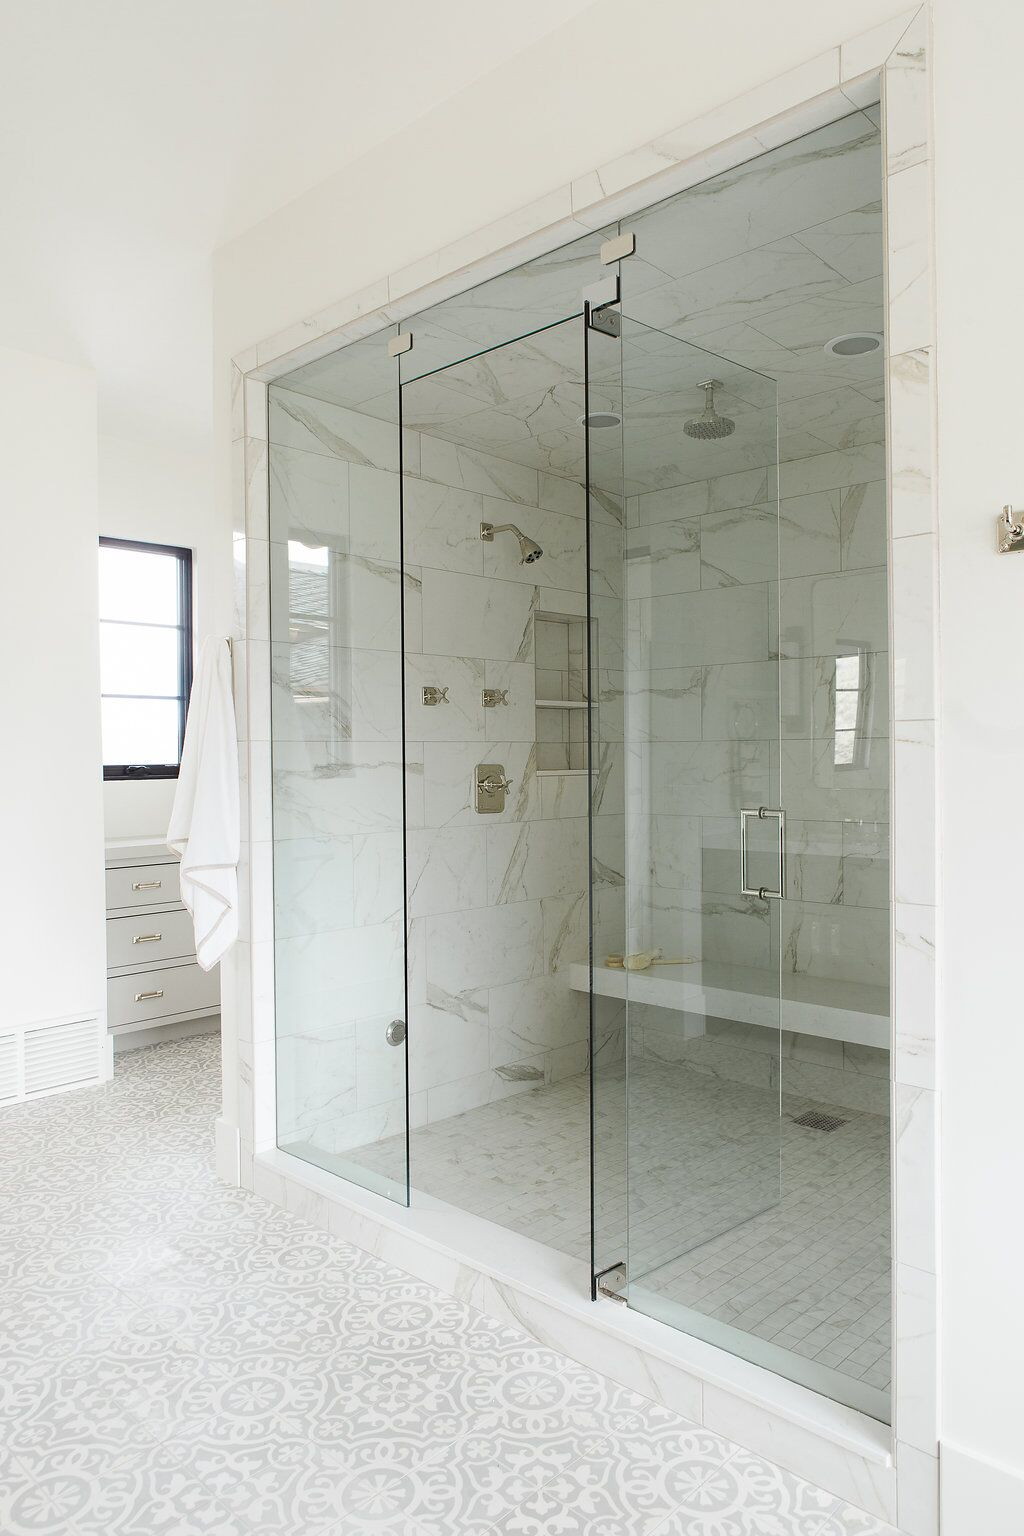 Stone bench in large shower in bathroom